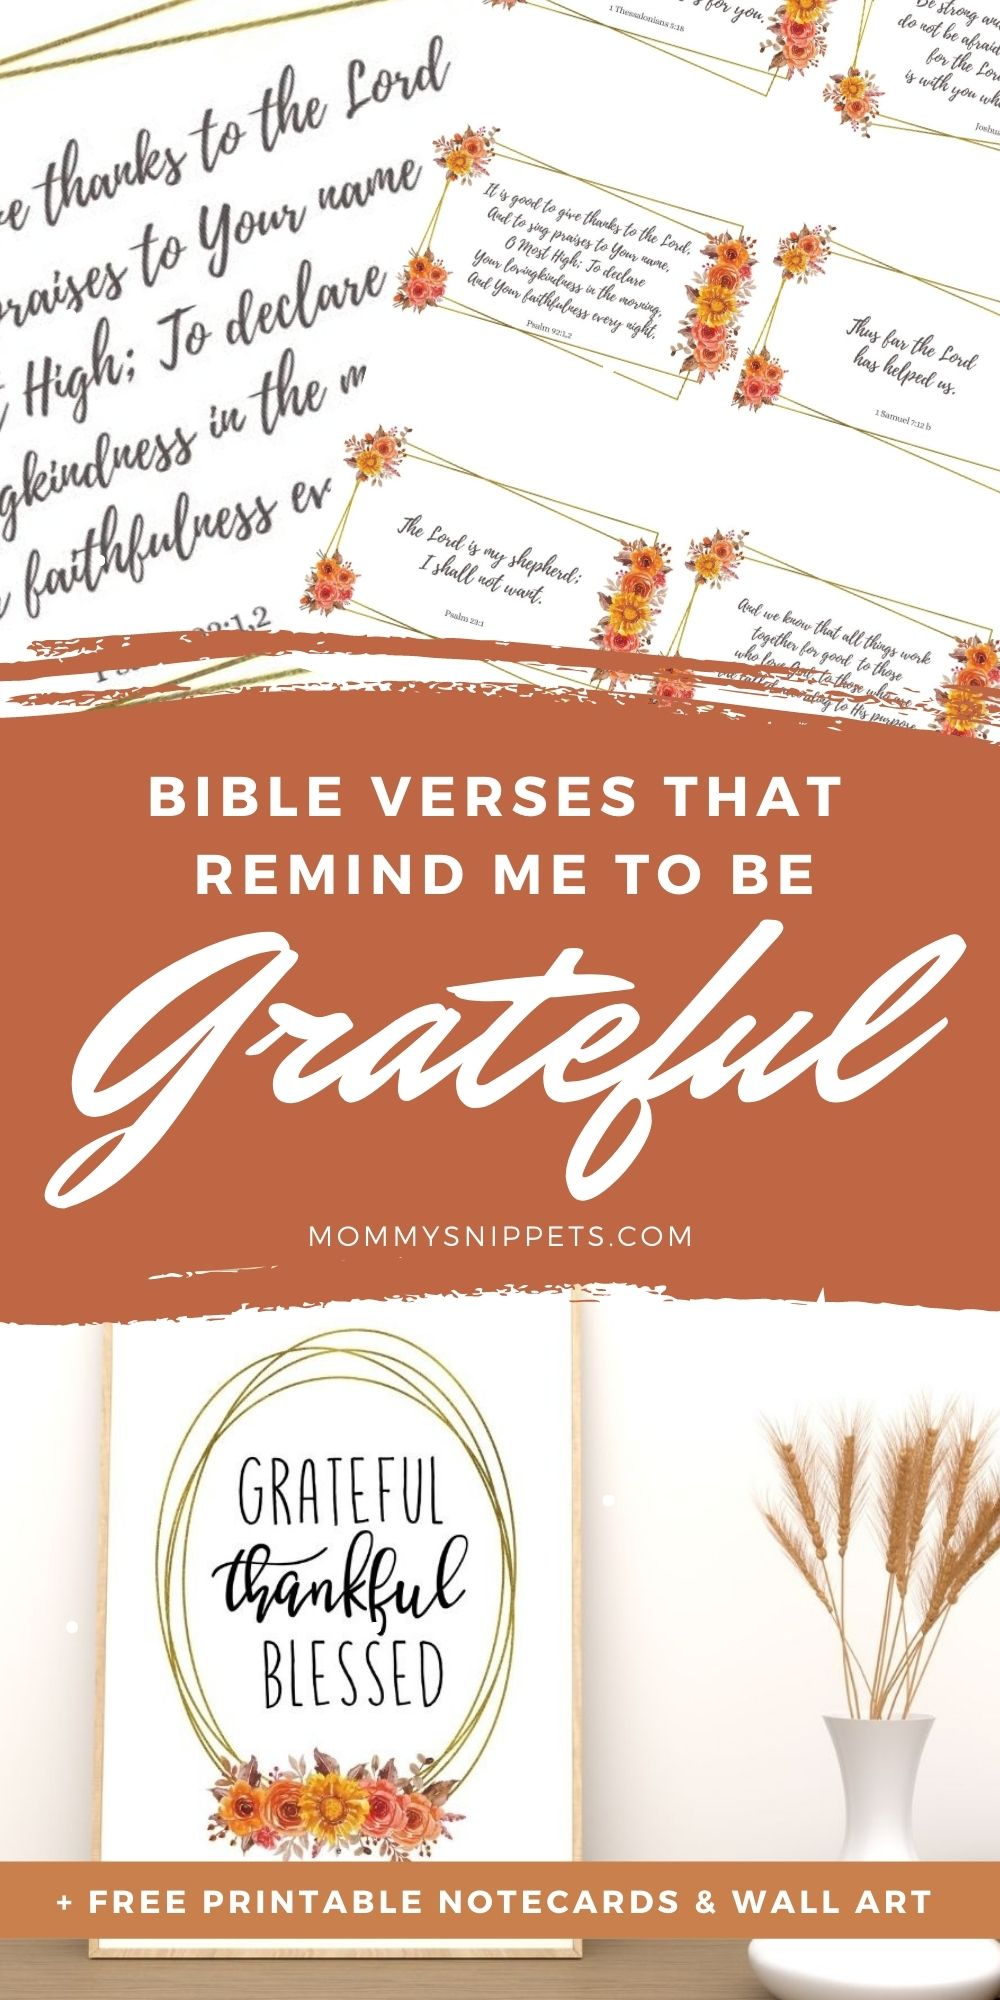 Bible Verses That Remind Me to Be Grateful- MommySnippets.com